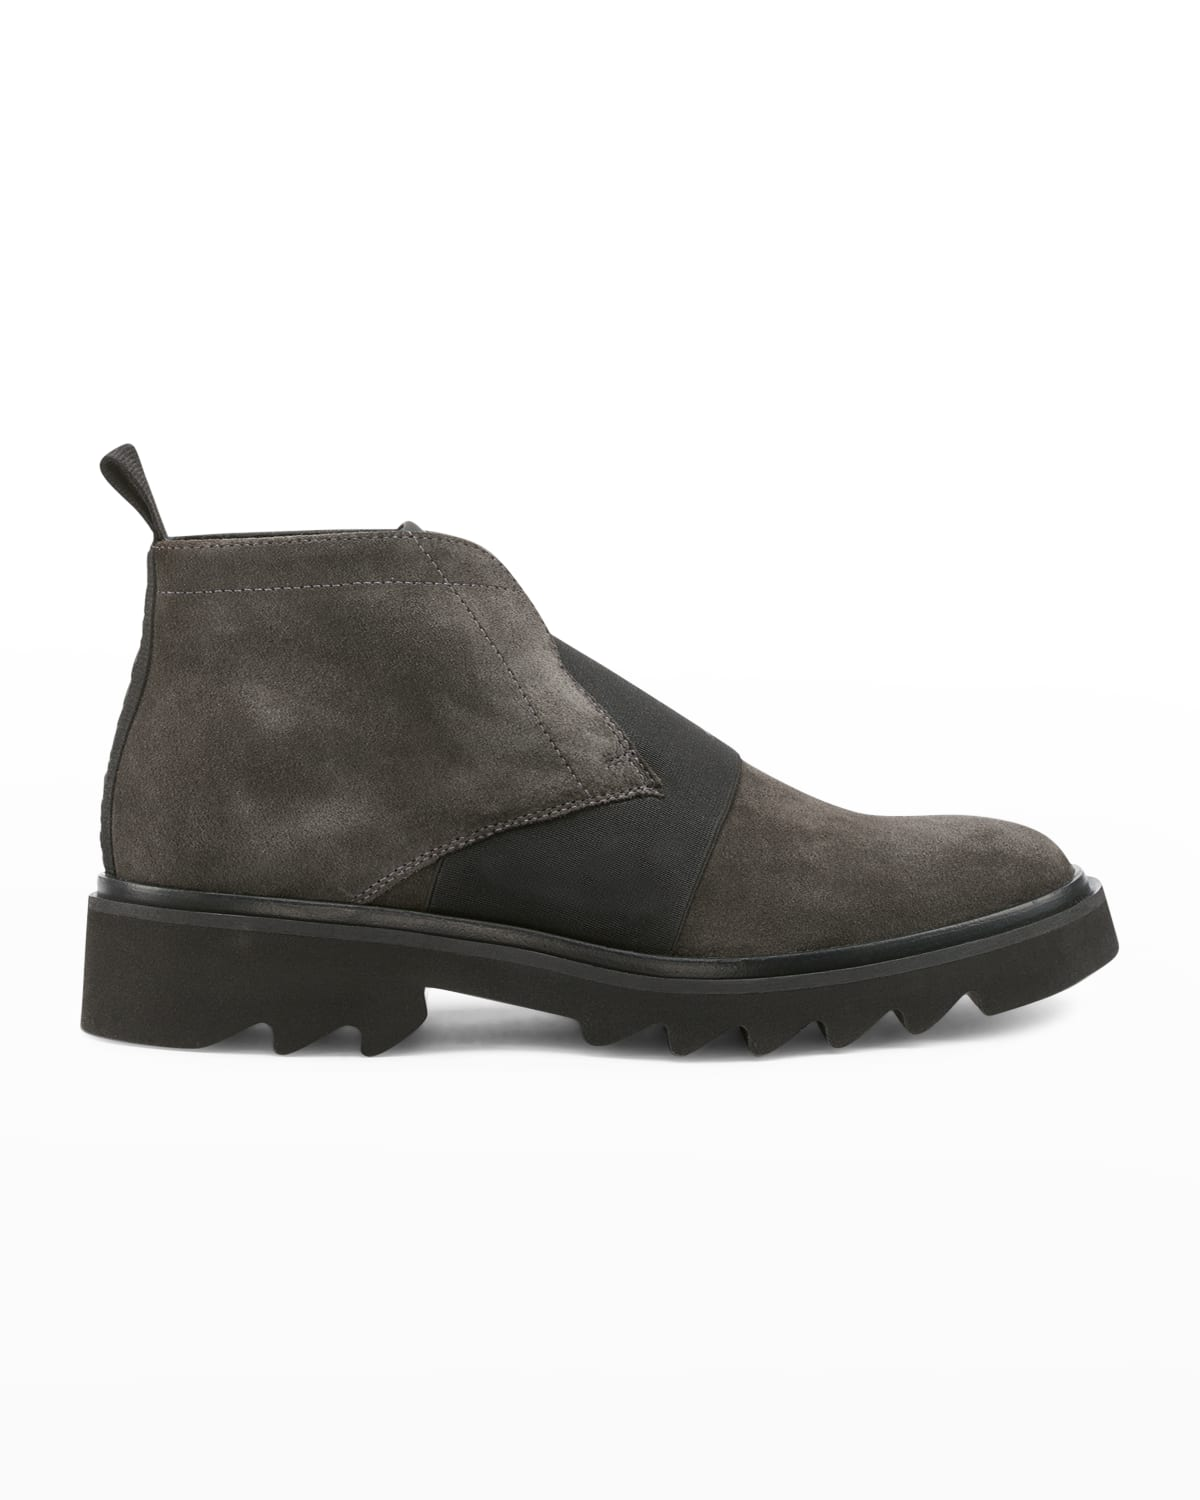 Men's Laceless Suede Chukka Boots